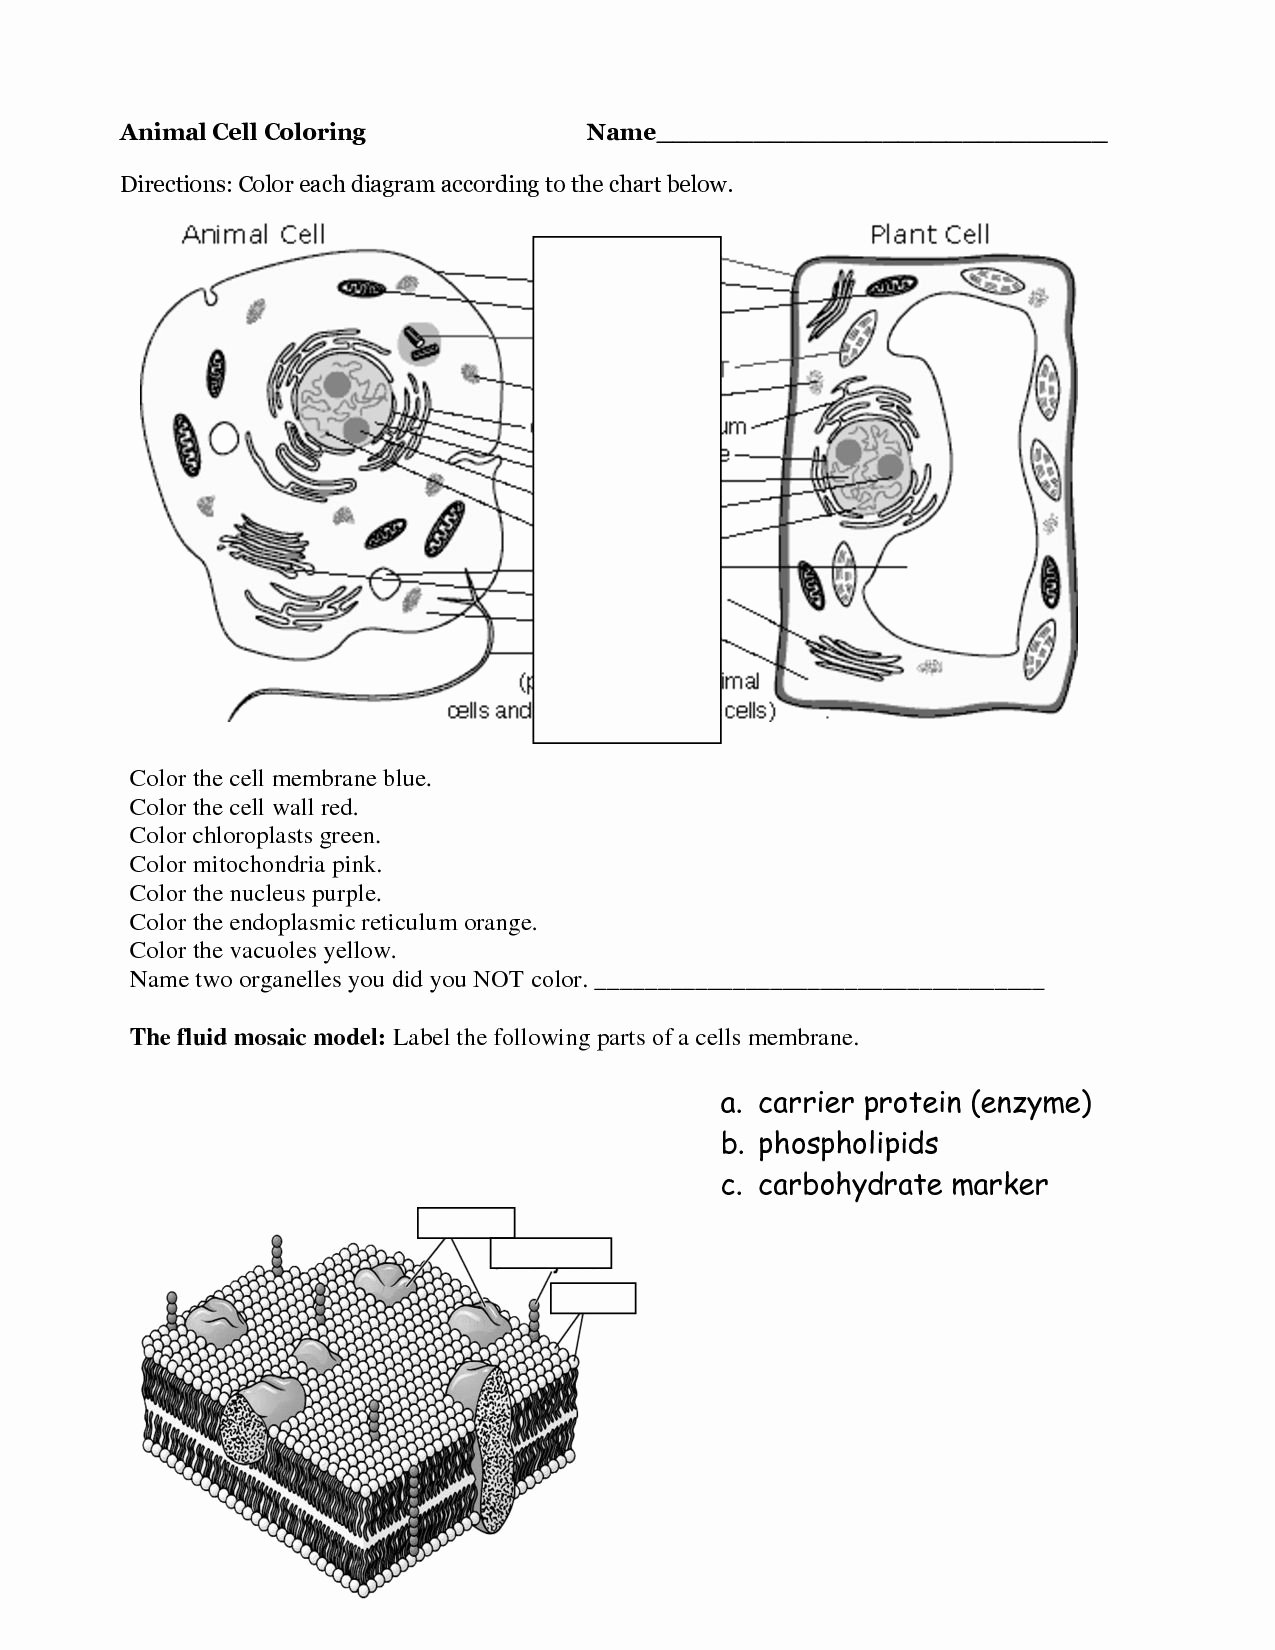 Animal Cell Coloring Worksheet Fresh Animal Cell Coloring Page Coloring Home